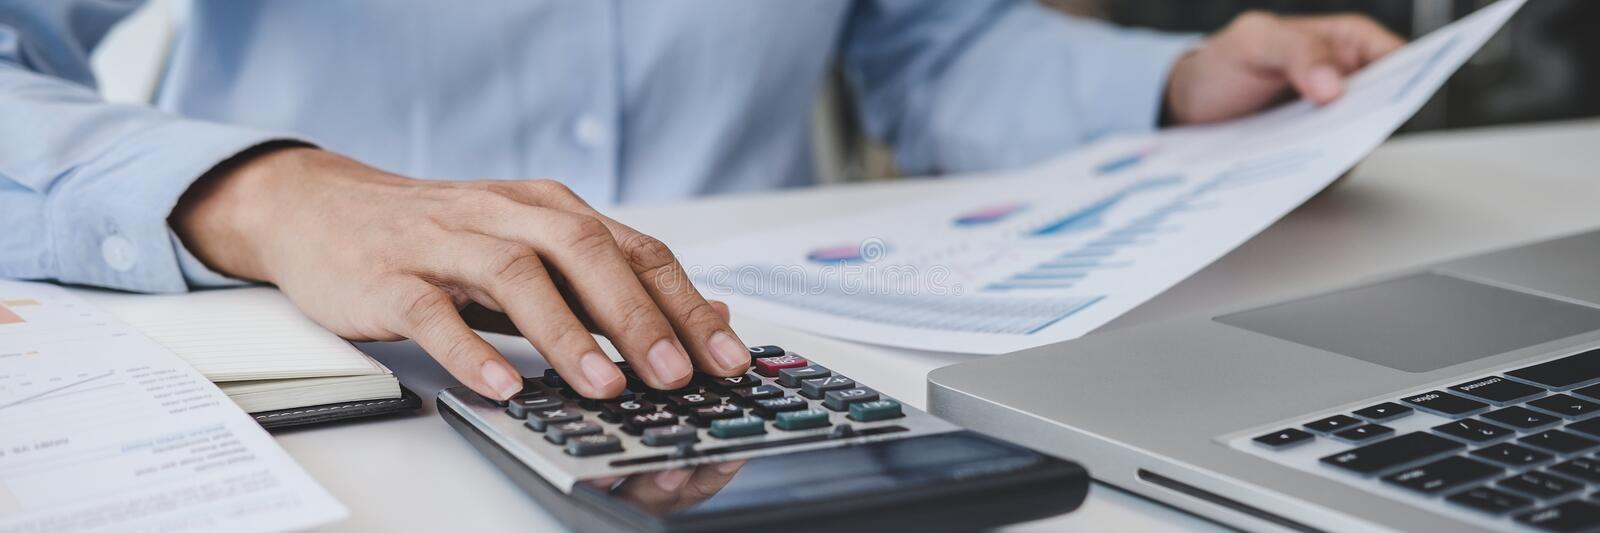 Professional at work, business woman working and analyzing on laptop with calculate statistics of financial document data graph royalty free stock photo